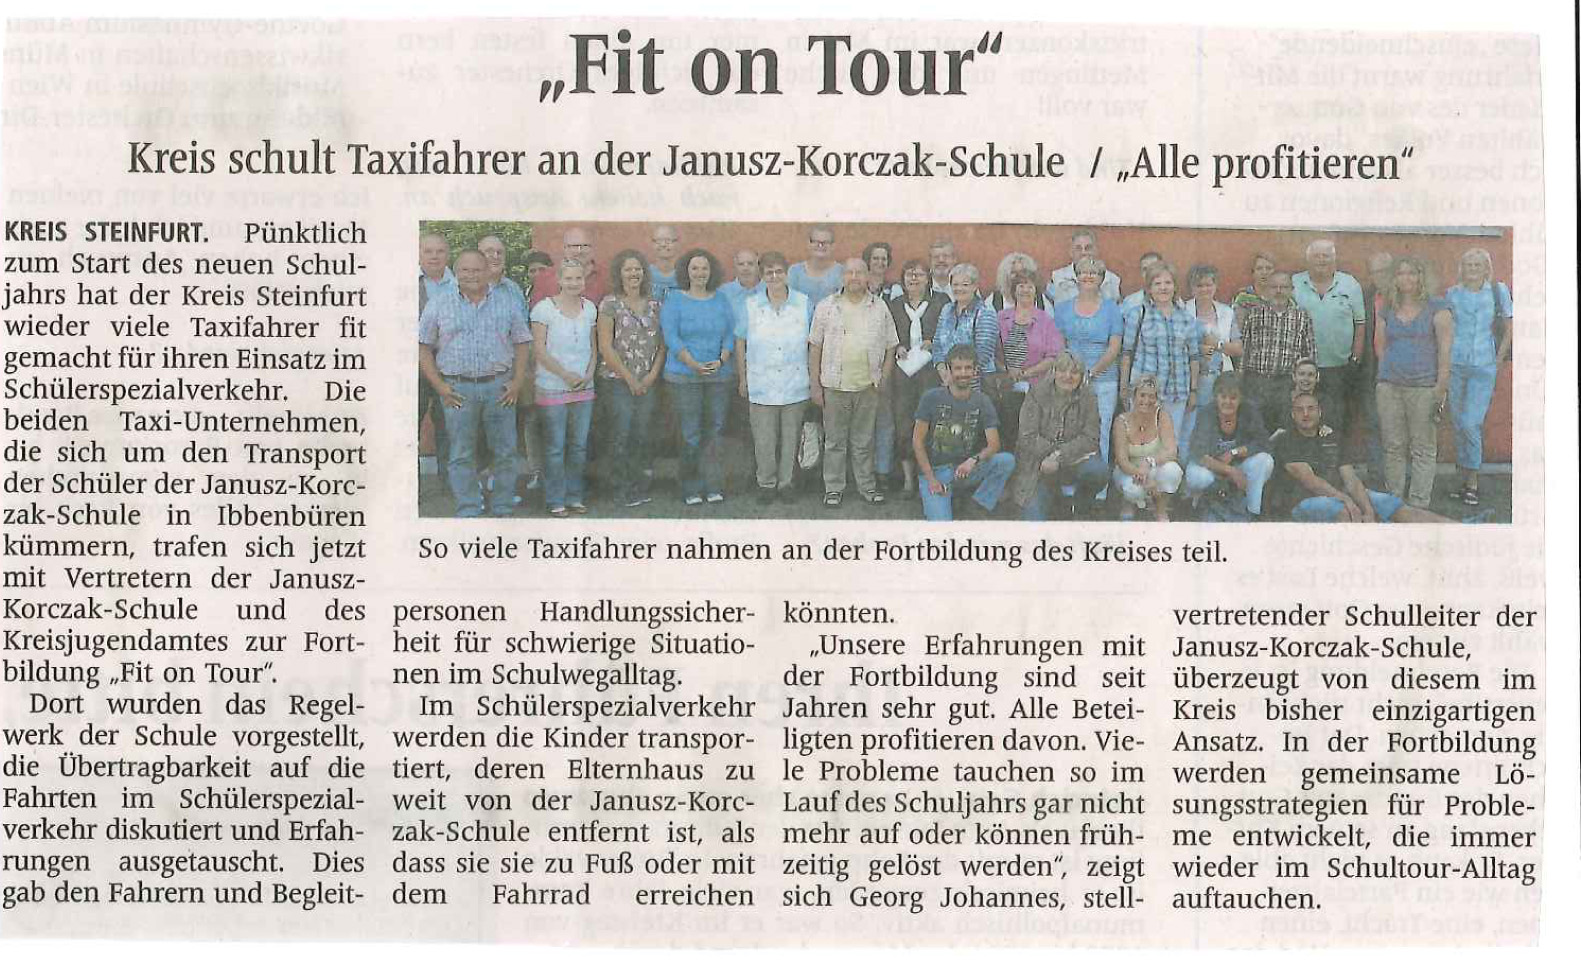 Fit on Tour 2012